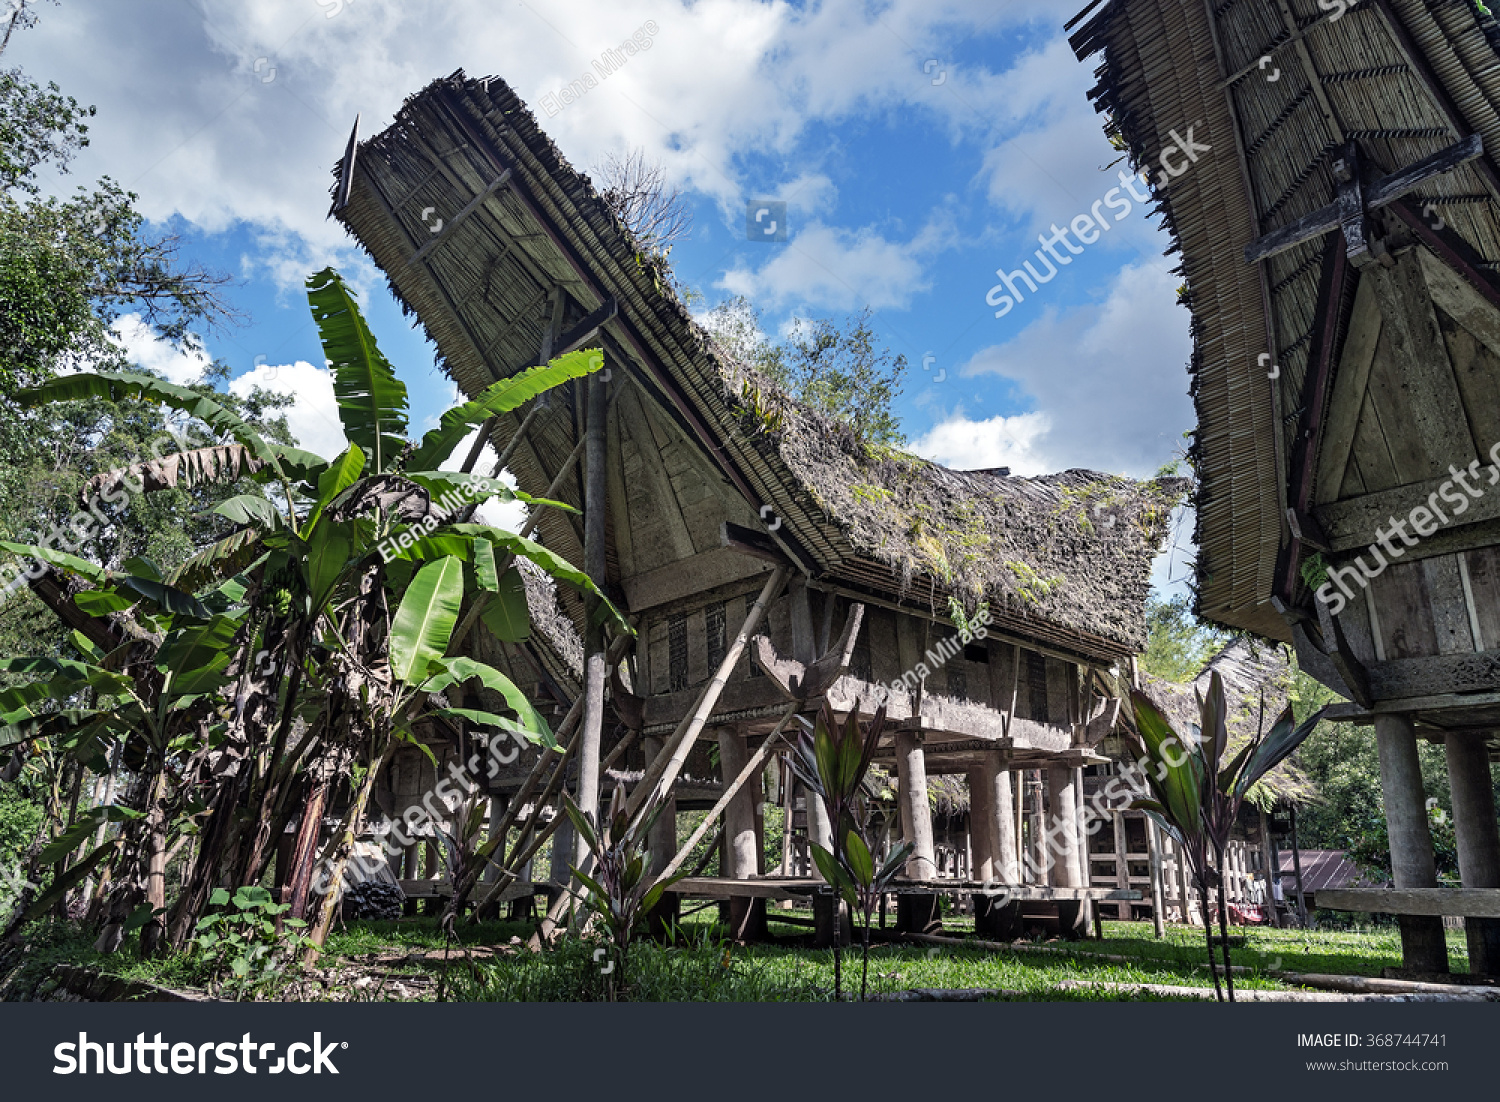 indonesian value and ideology of toraja Indonesia money, indonesia rupiah money we offer competitive price with value of pinisi cruise - tourist information - makassar - toraja.